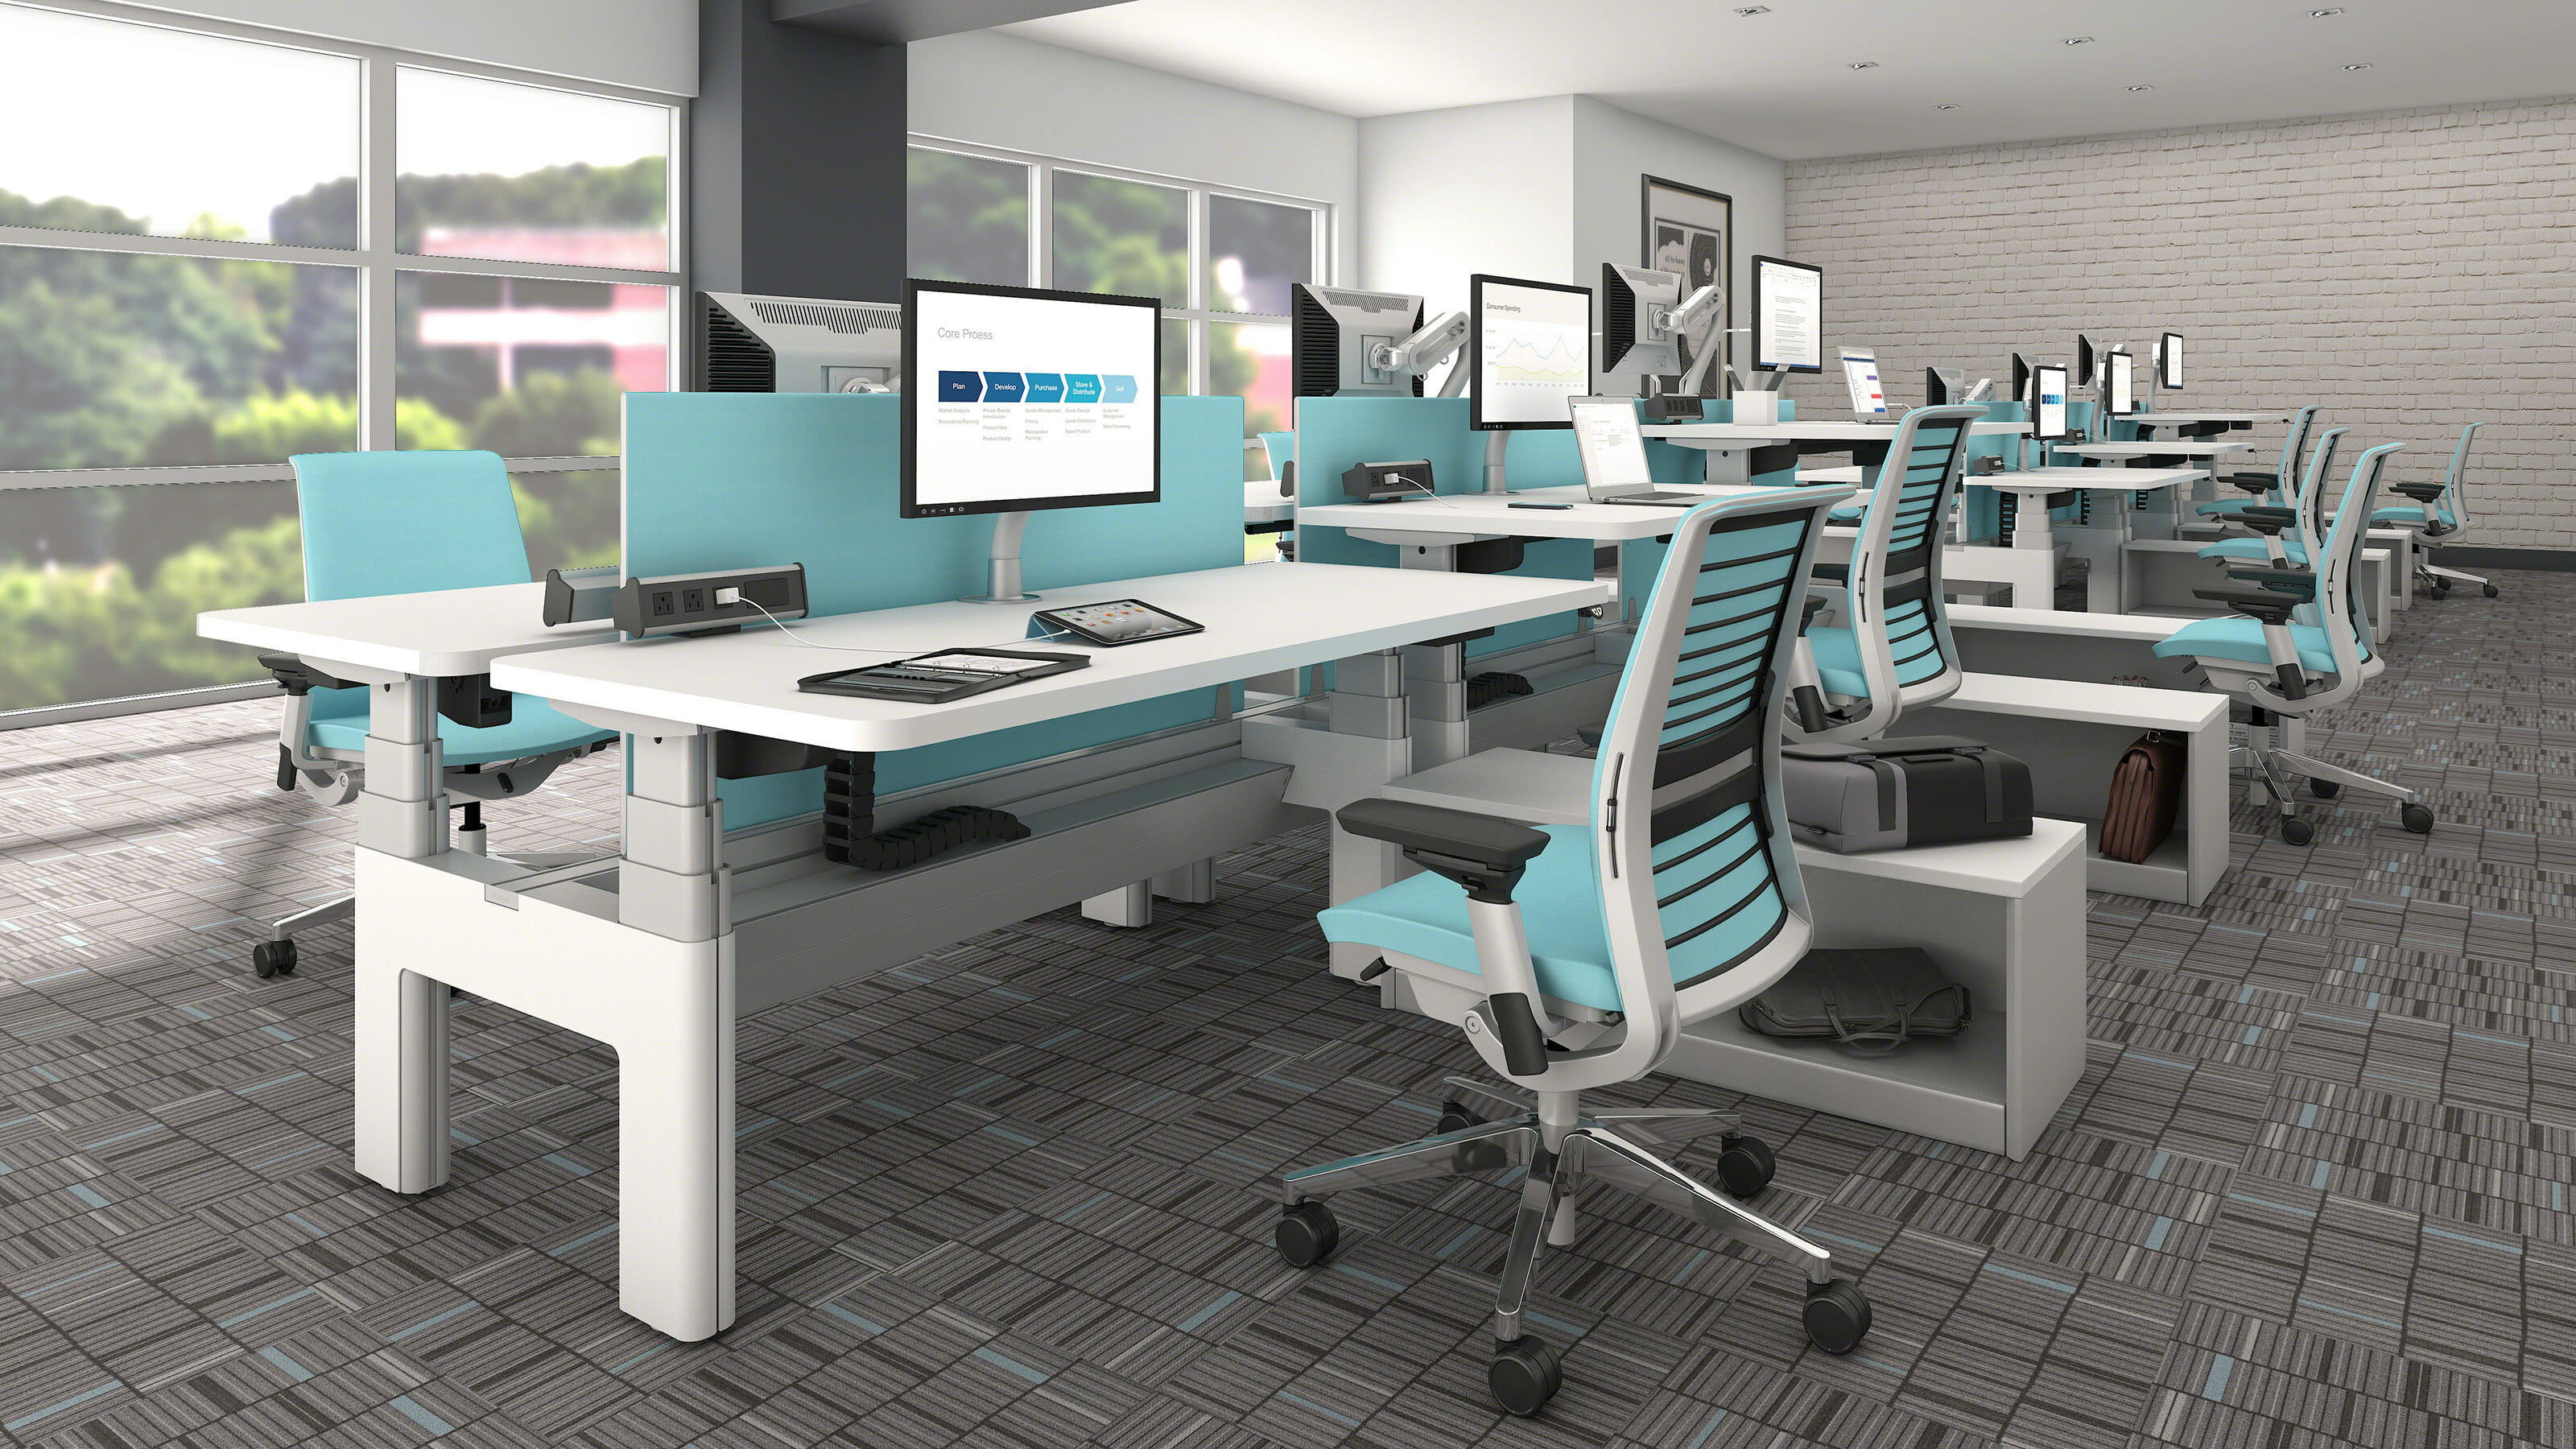 steelcase series bench modern office design furniture solutions desk with outlet plug